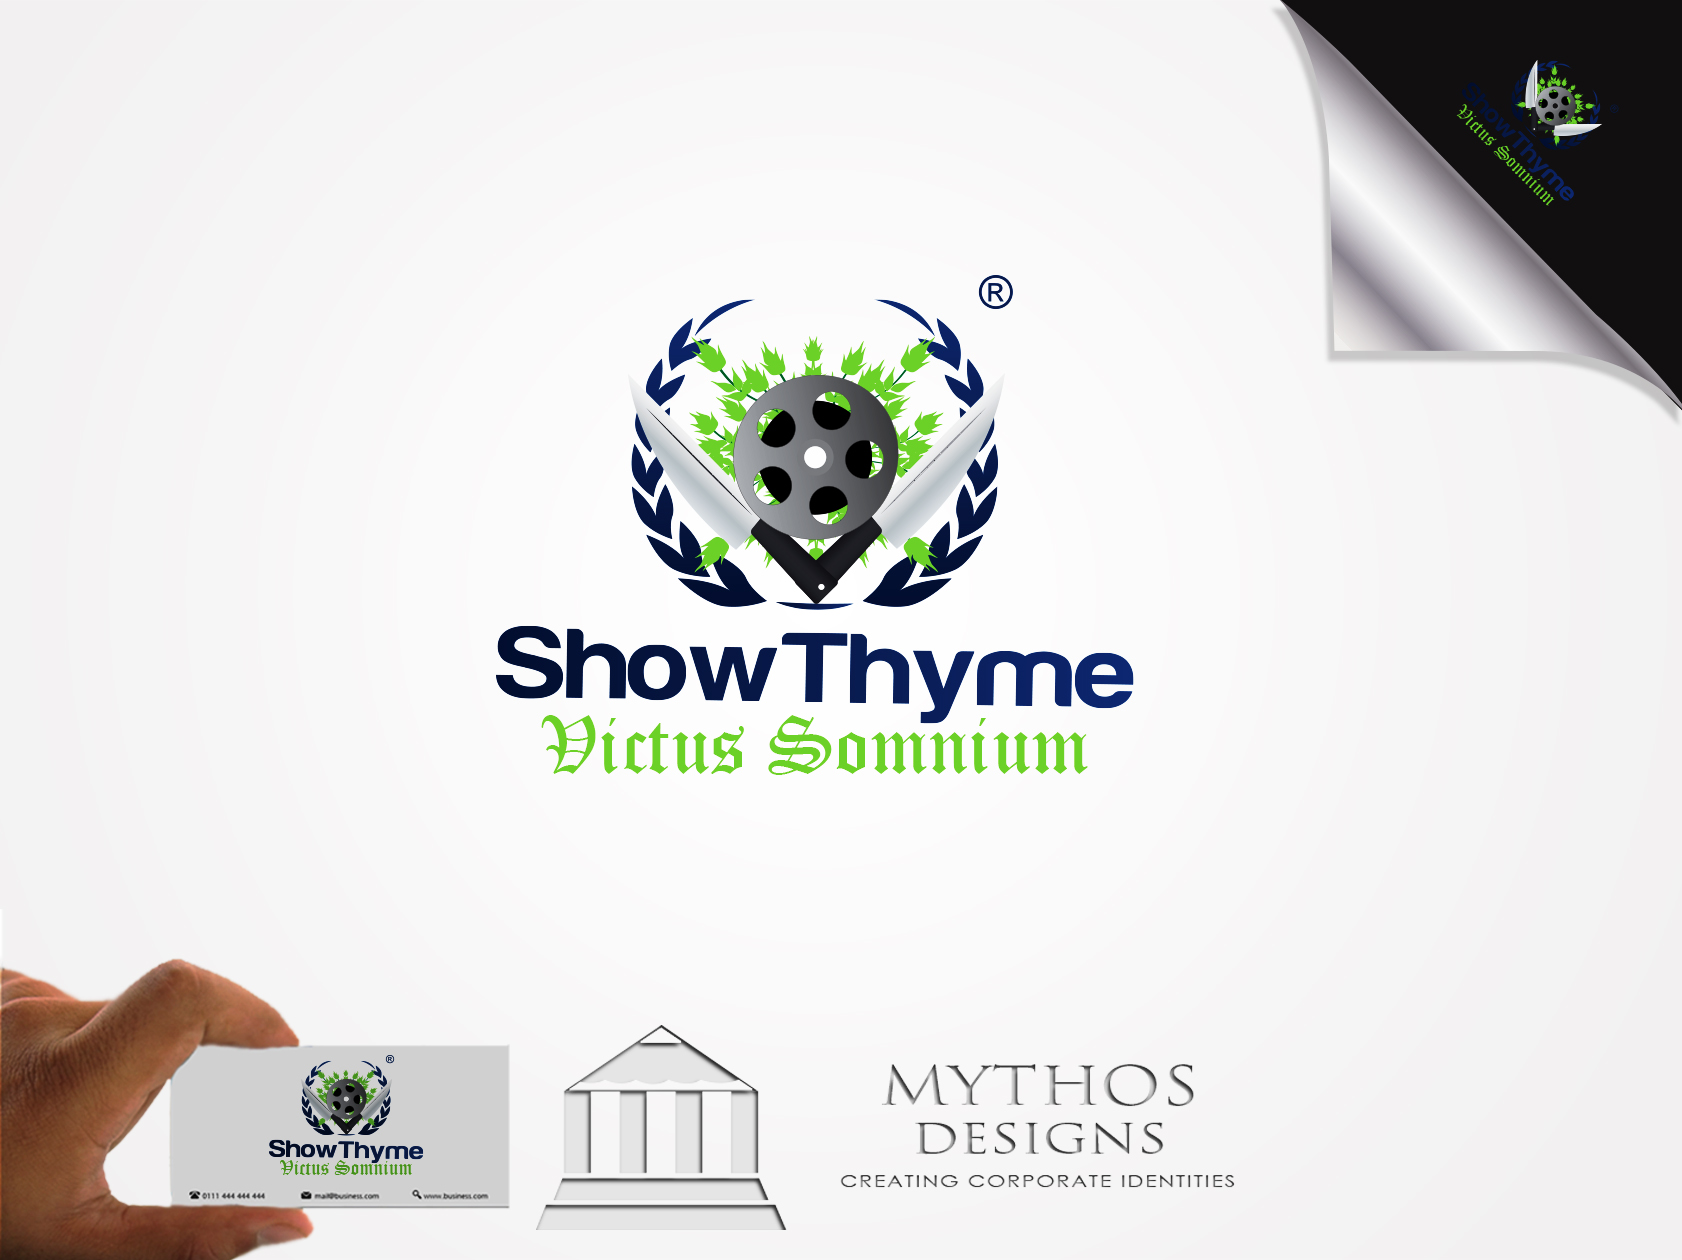 Logo Design by Mythos Designs - Entry No. 59 in the Logo Design Contest Showthyme Catering Logo Design.